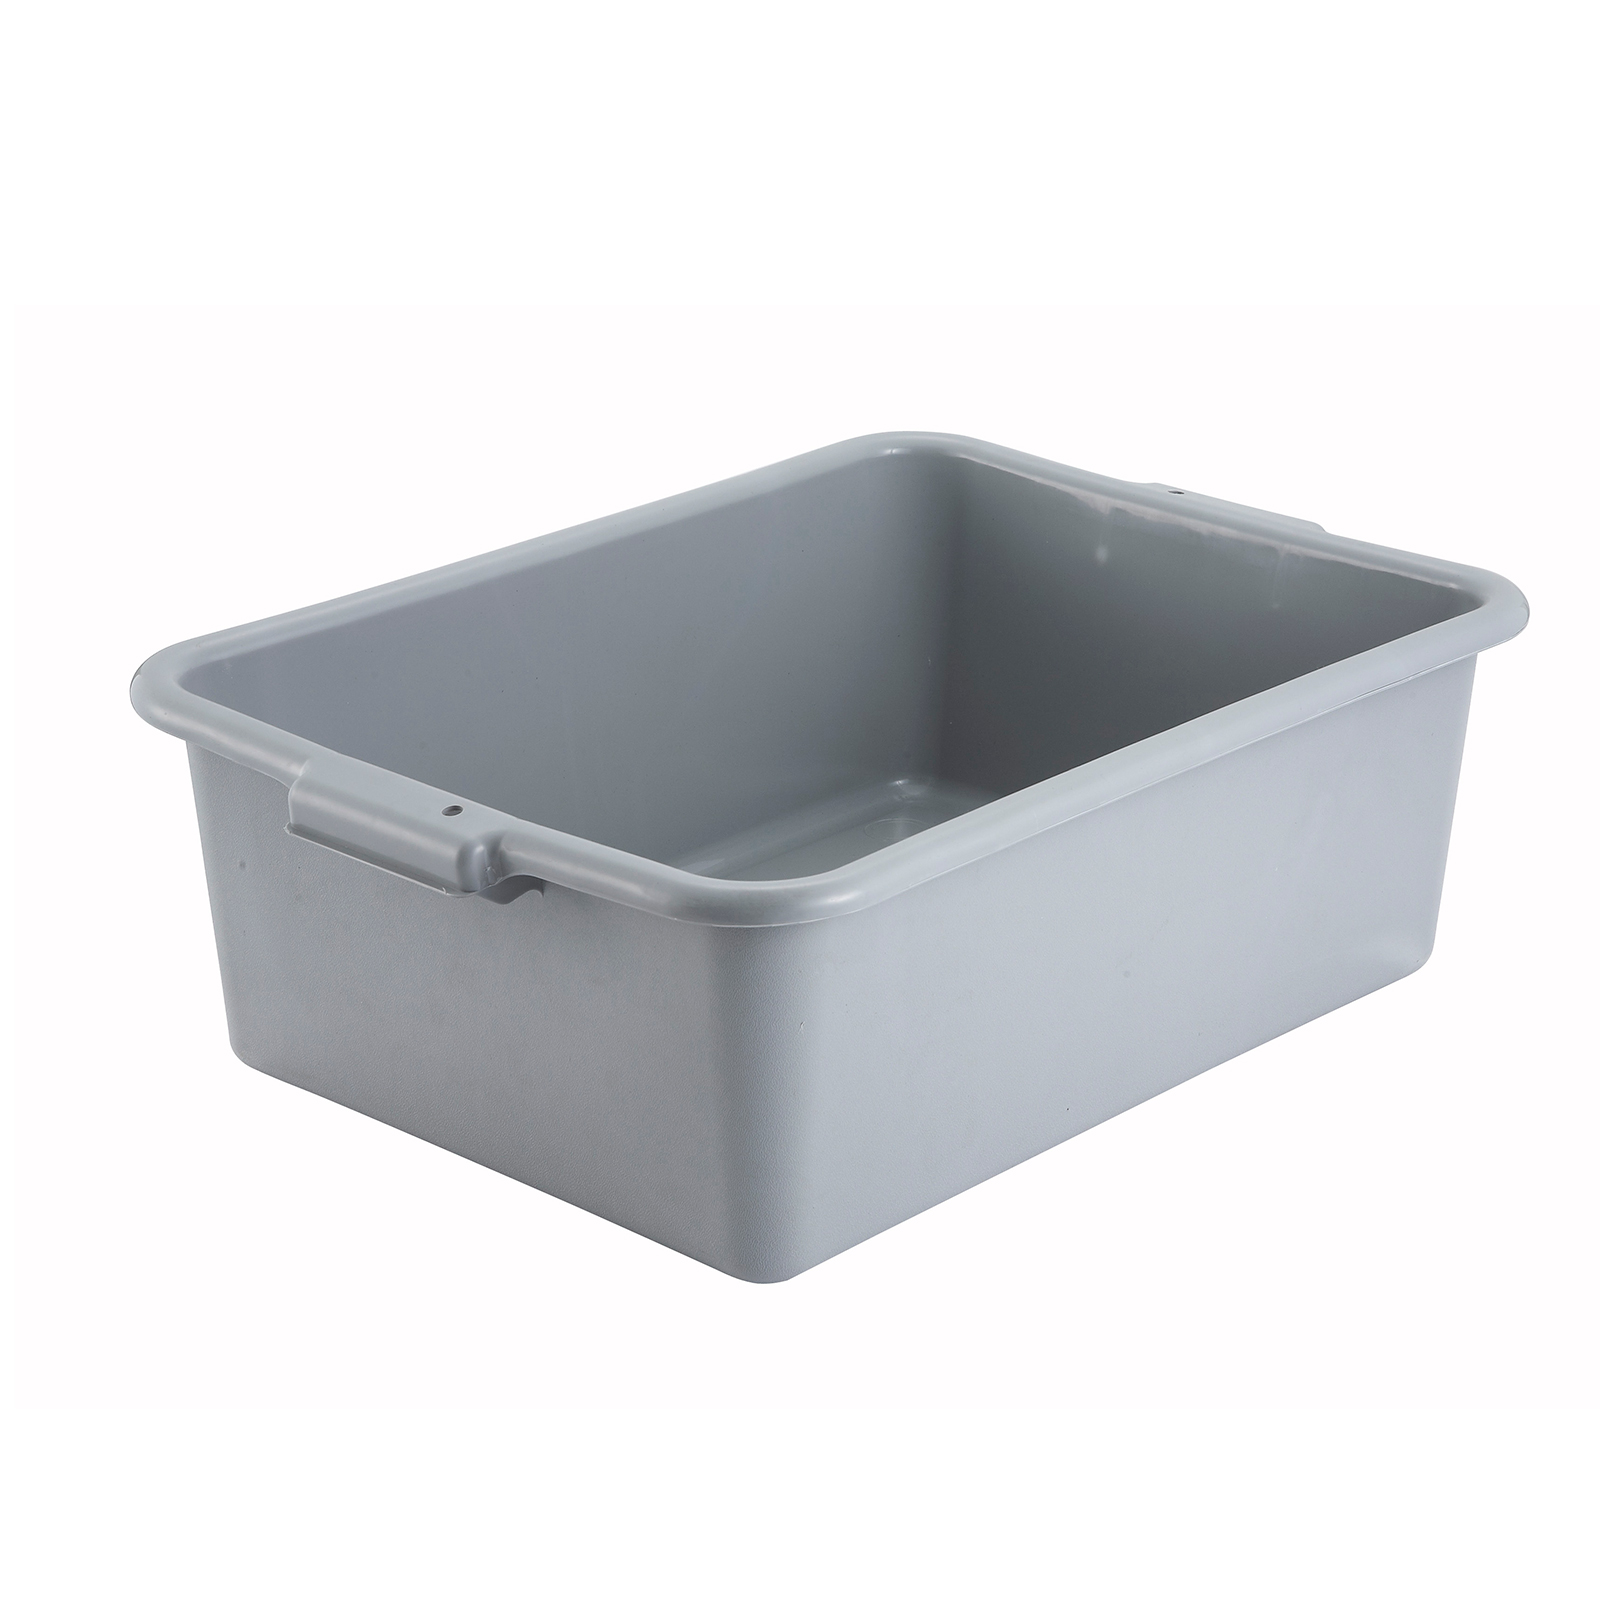 Winco PL-7G bus box / tub